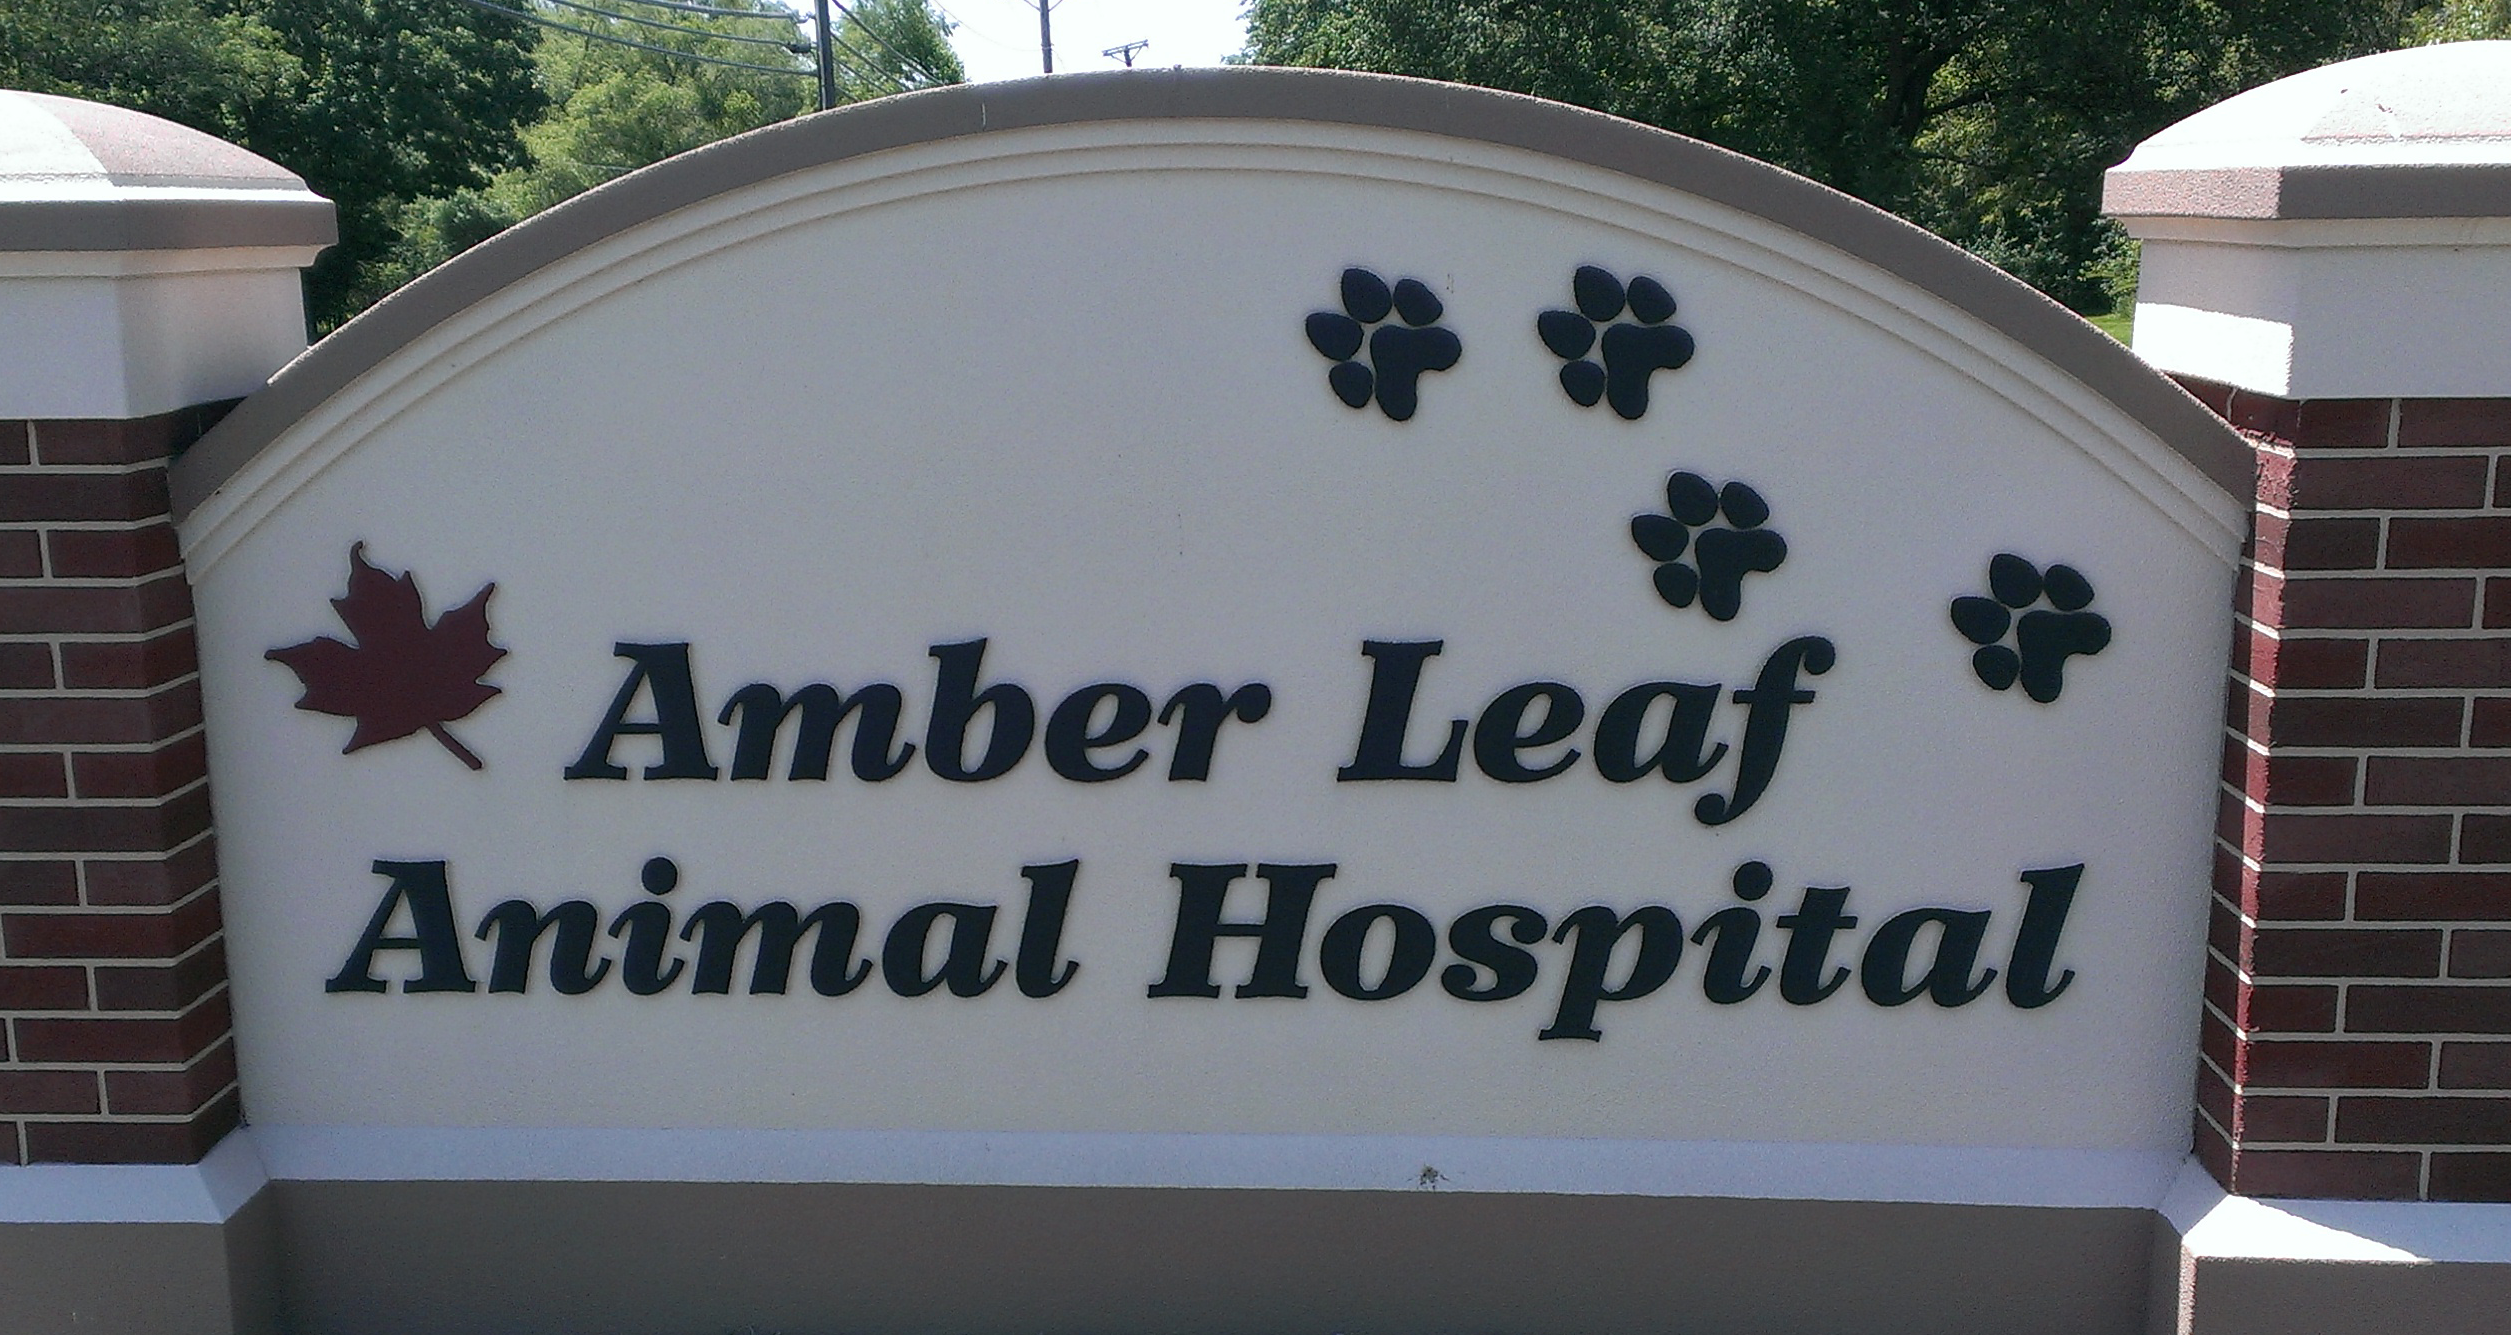 Amber Leaf Animal Hospital PNG